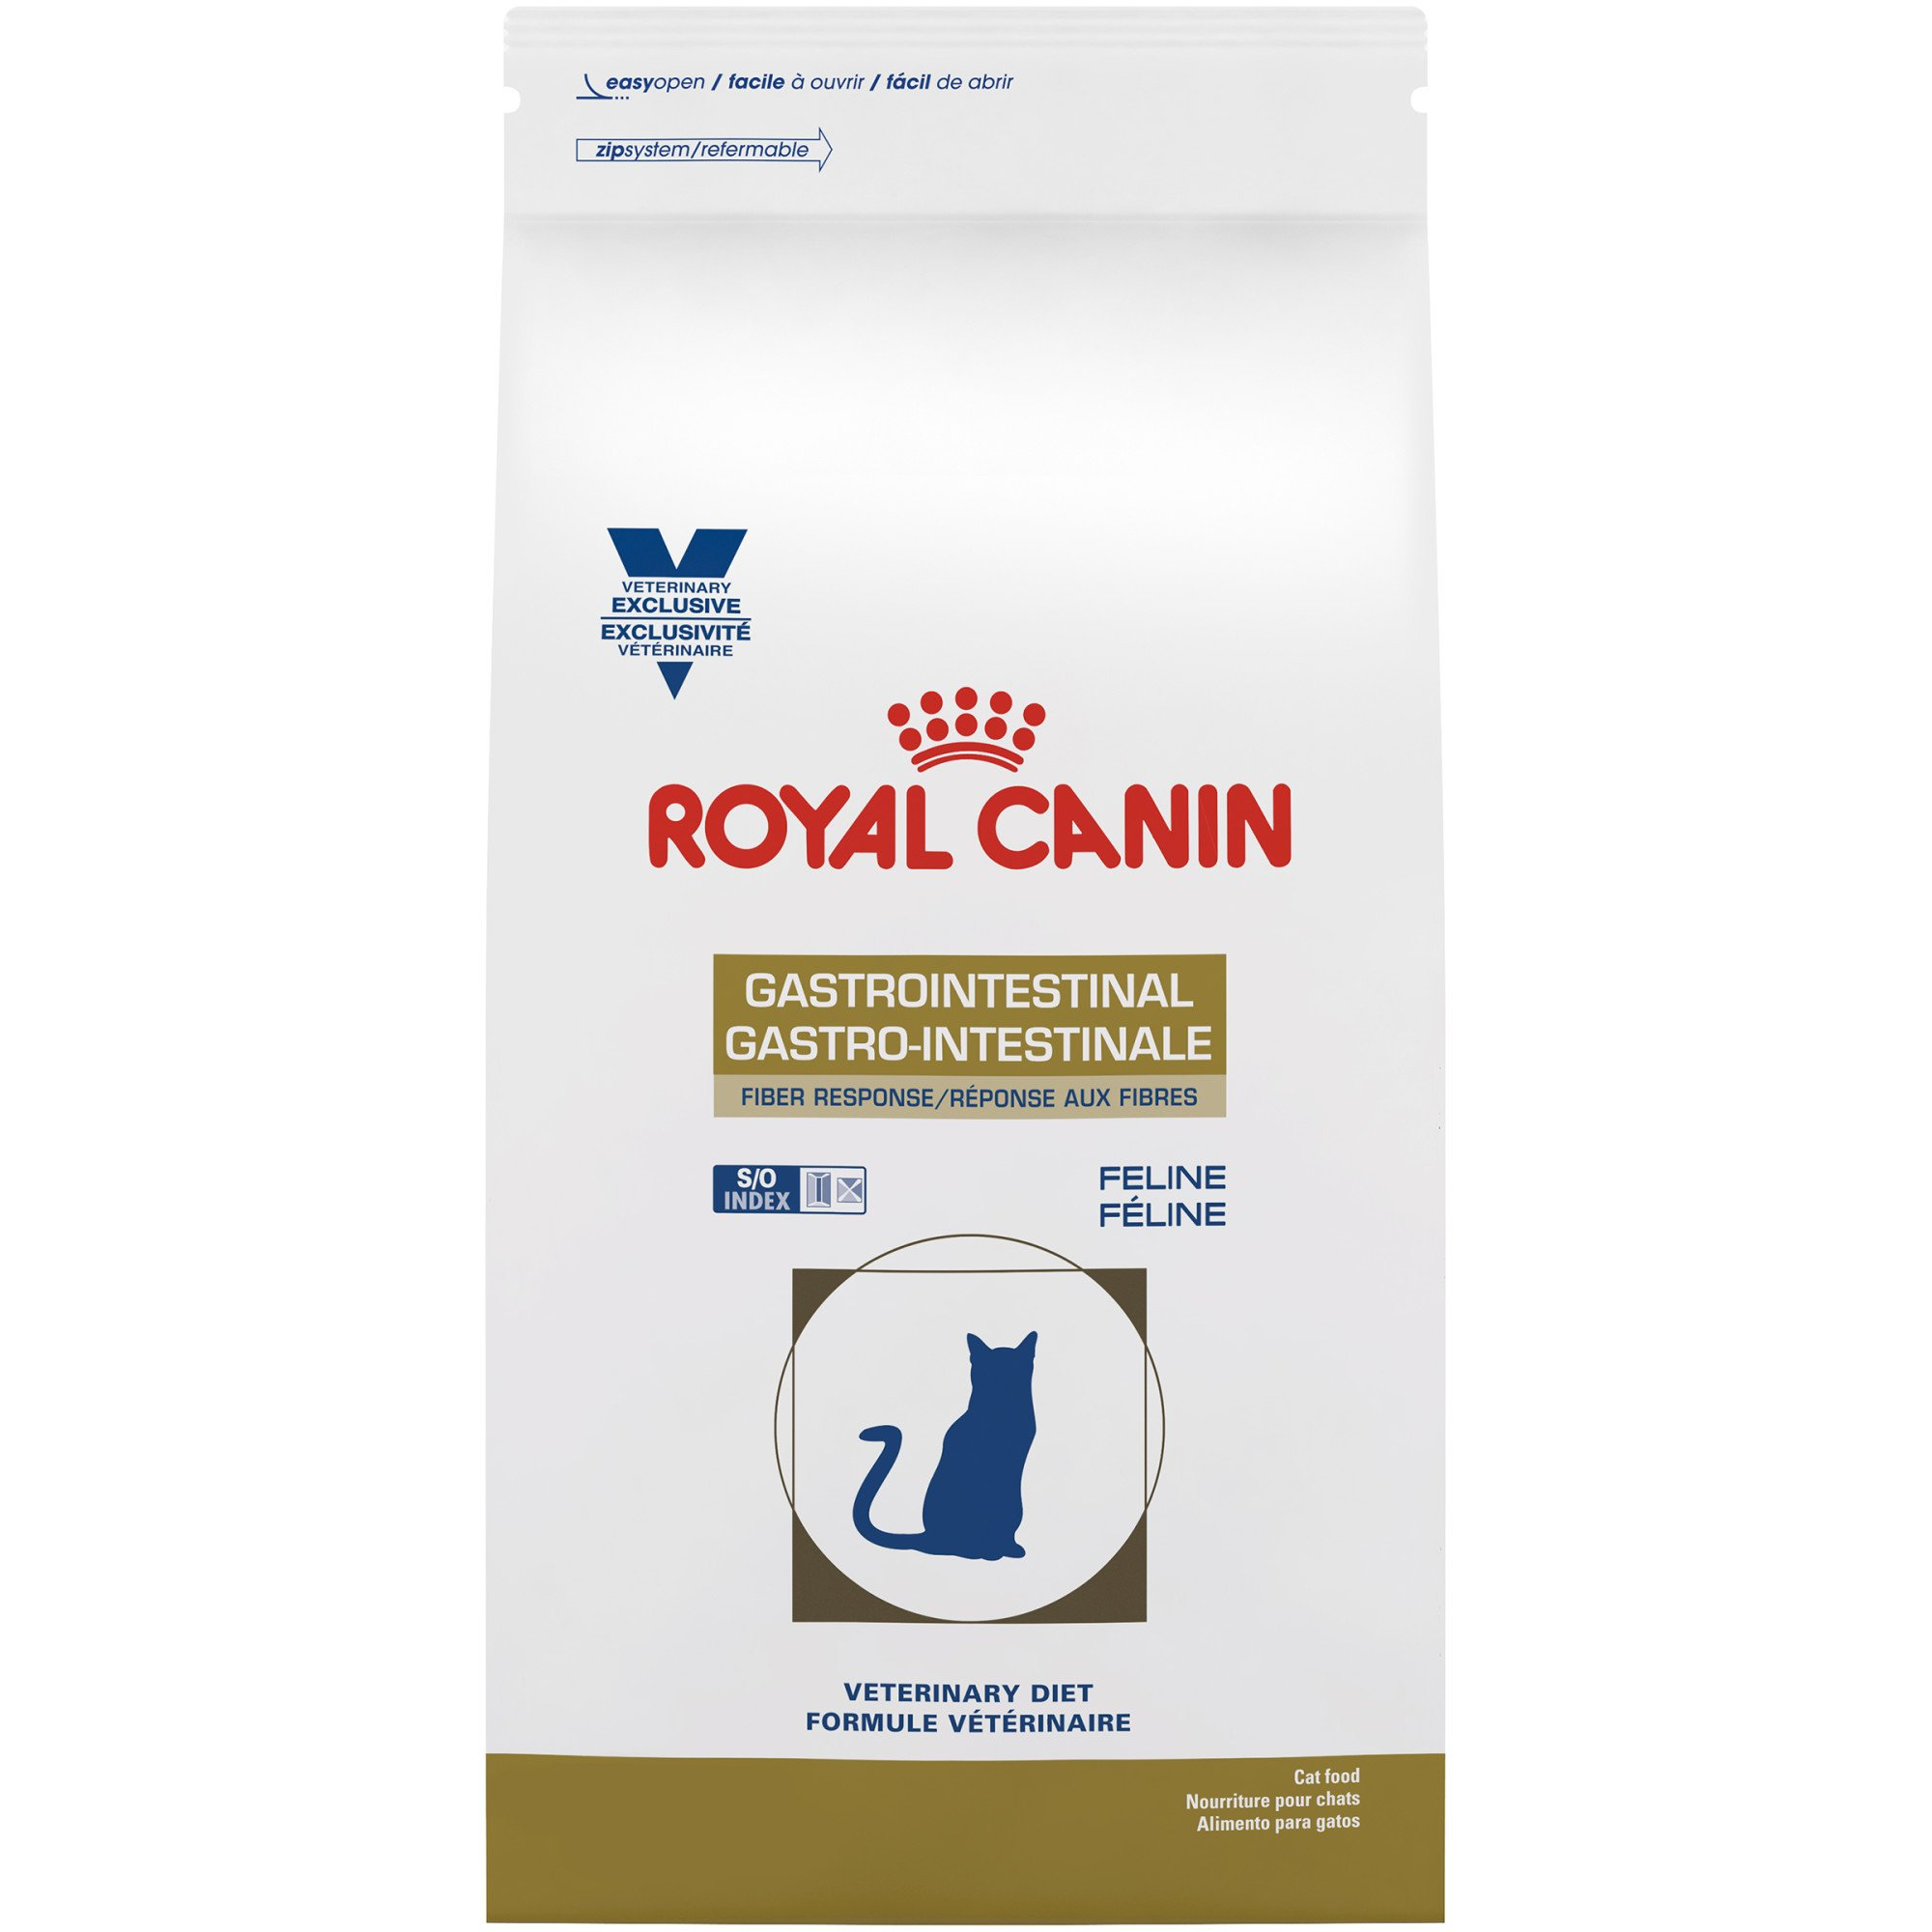 Royal Canin Veterinary Diet Gastrointestinal Fiber Response Cat Dry Food